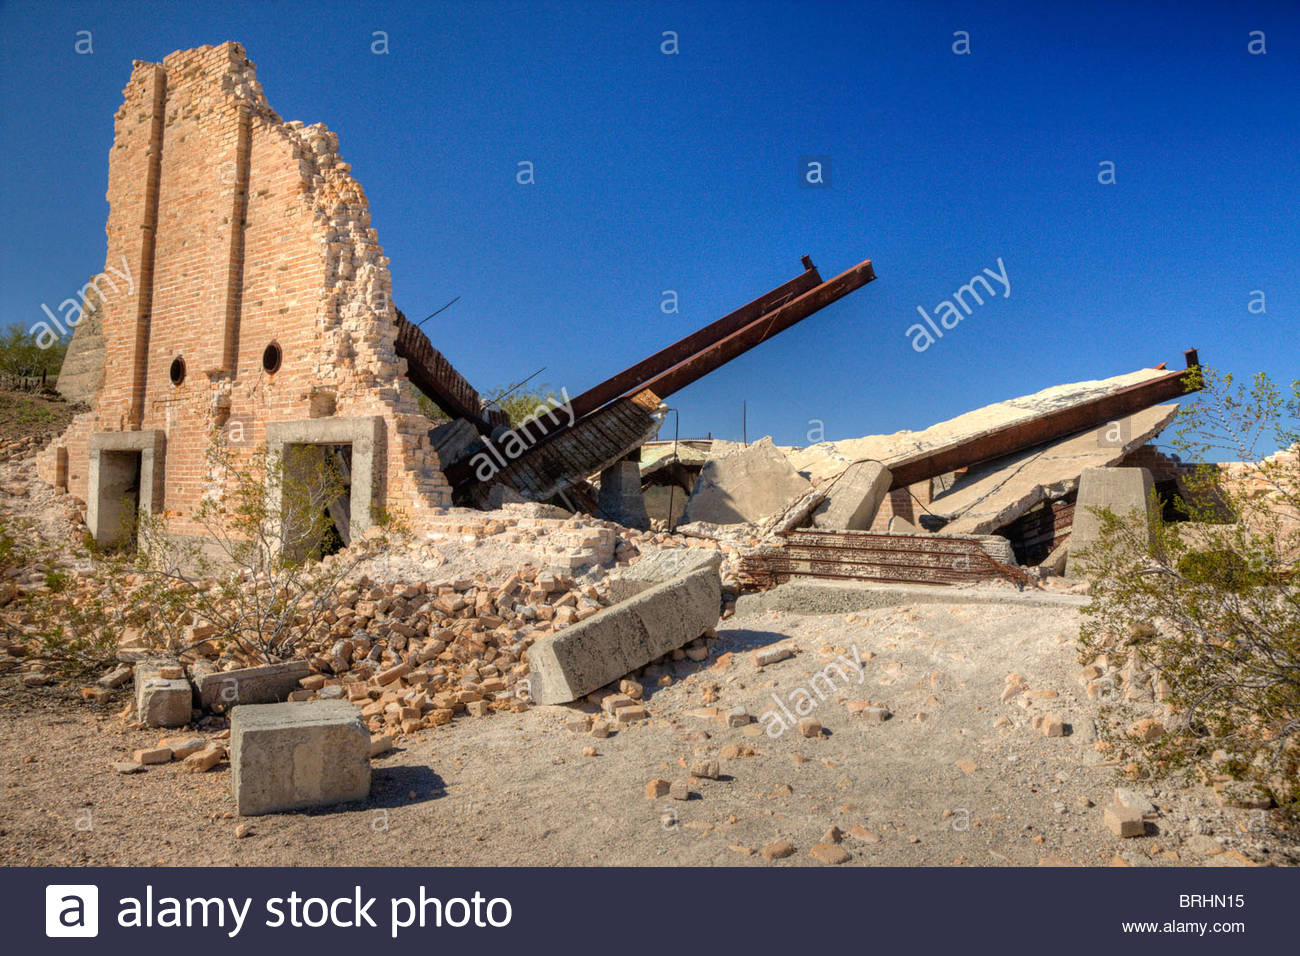 The crumbling walls of the dust chamber at Swansea recall a bygone era - Stock Image